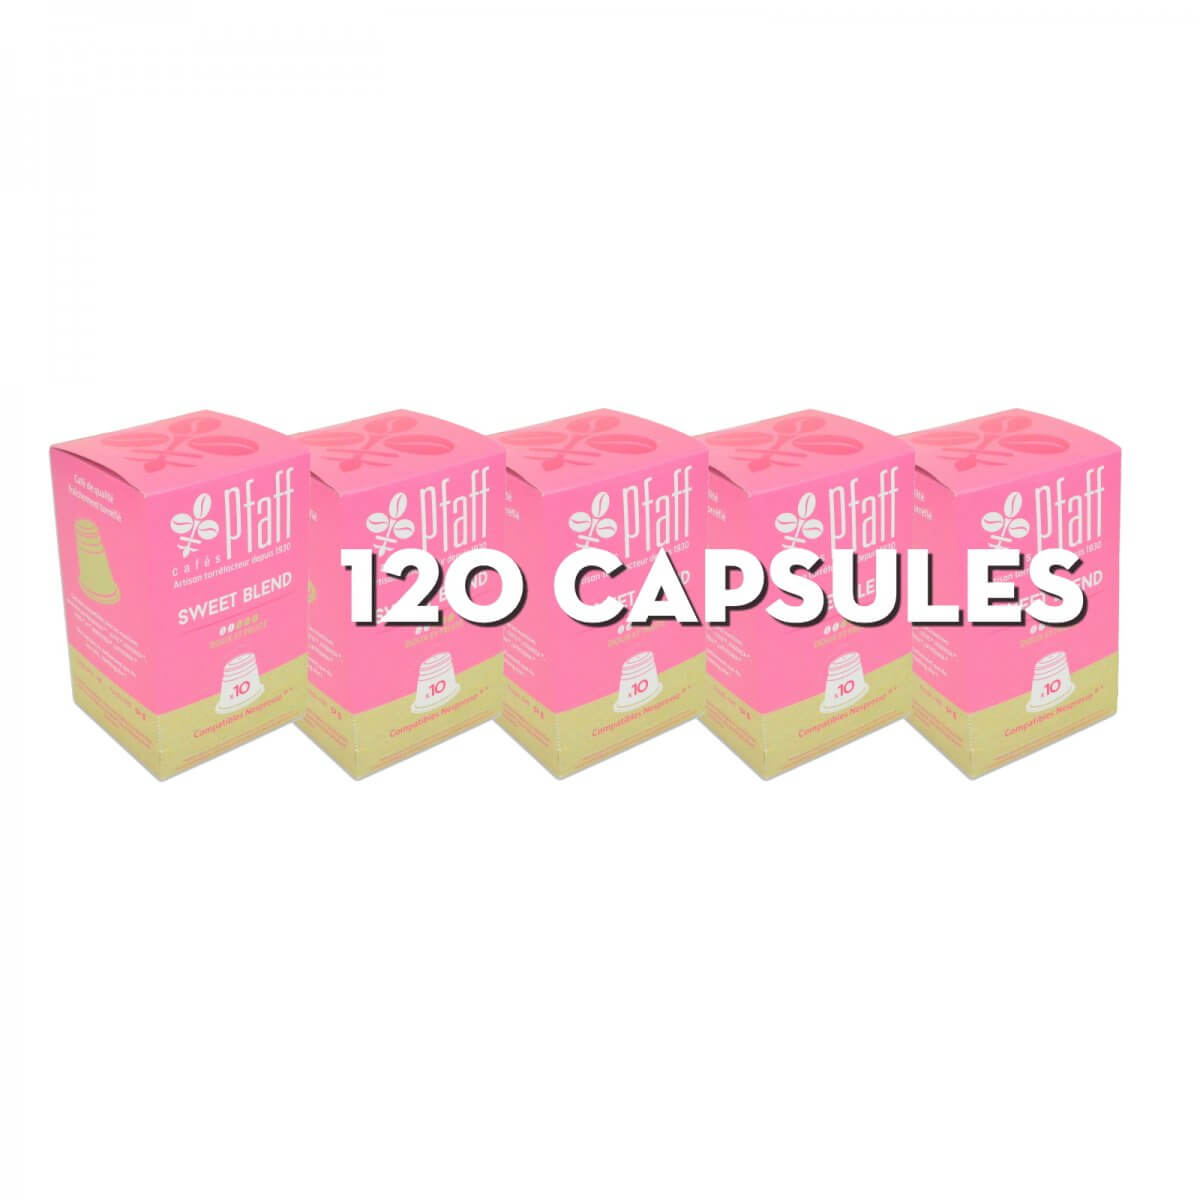 120 capsules SWEET BLEND compatibles Nespresso®*